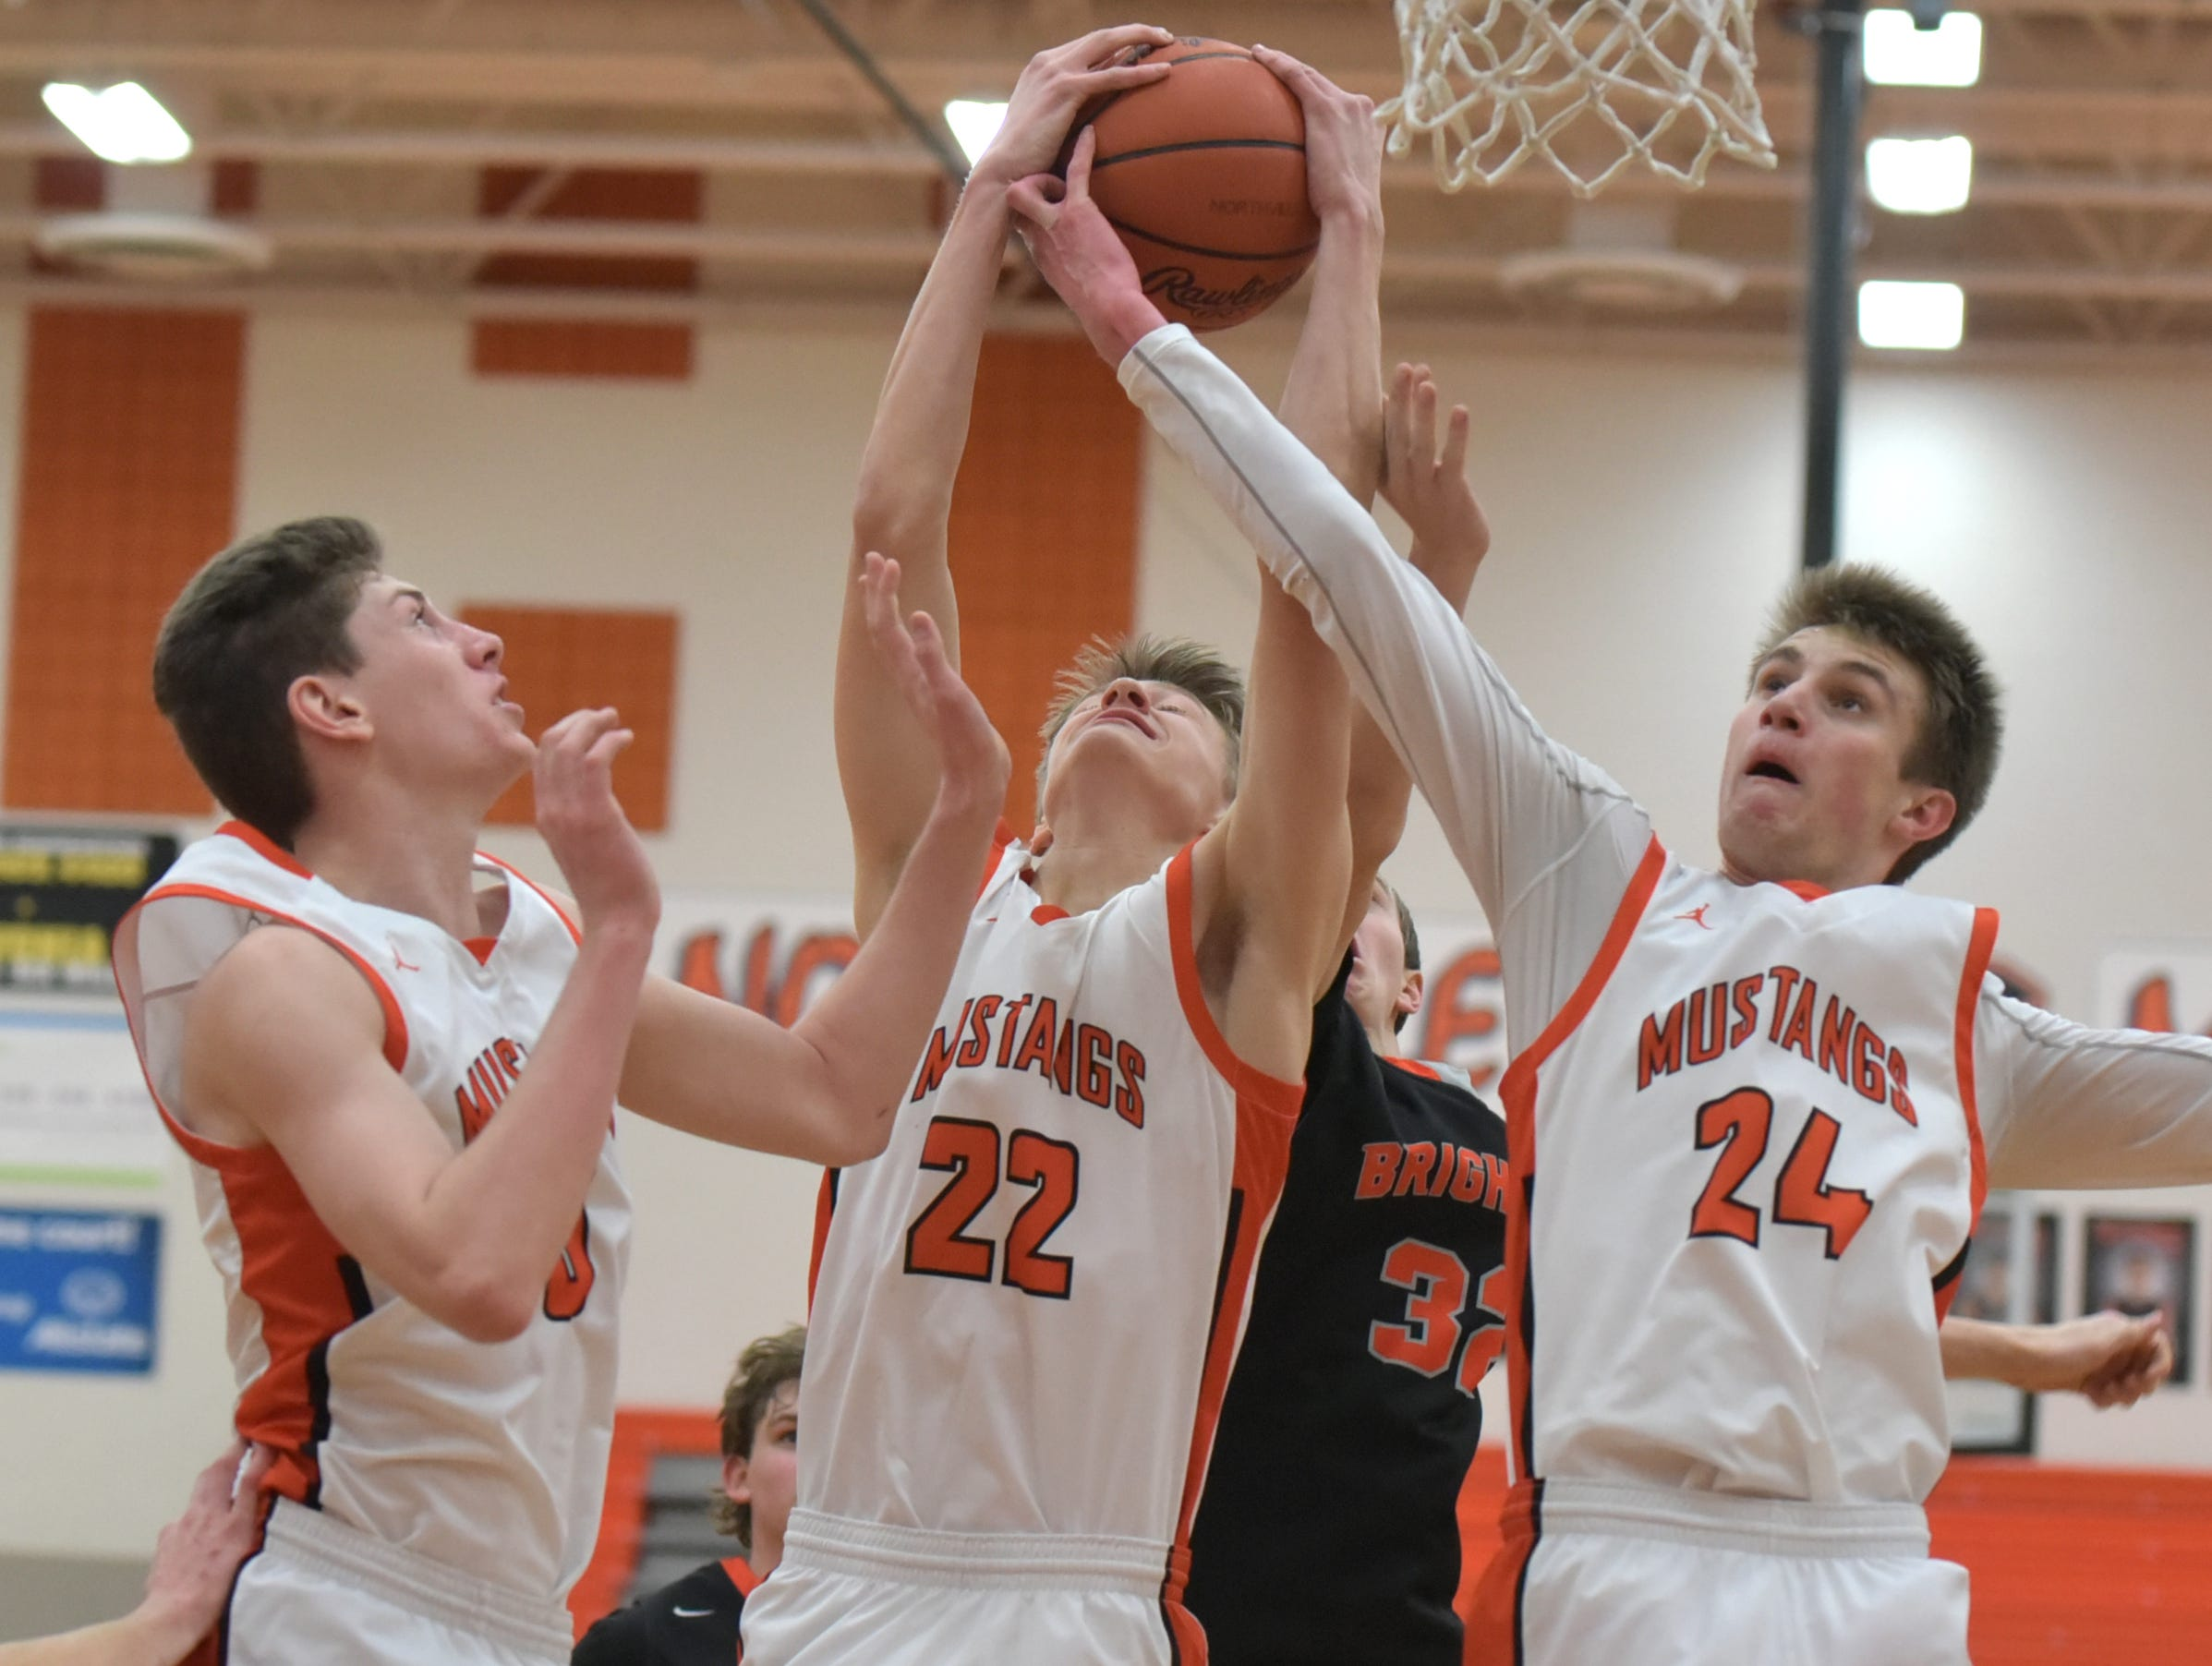 Three Northville Mustangs go up for a rebound including, from left, Zach Shoemaker, Ryan Pumper, and Steven Morrissey. Brighton Bulldog Owen Ehman, rear, is left grabbing at air.